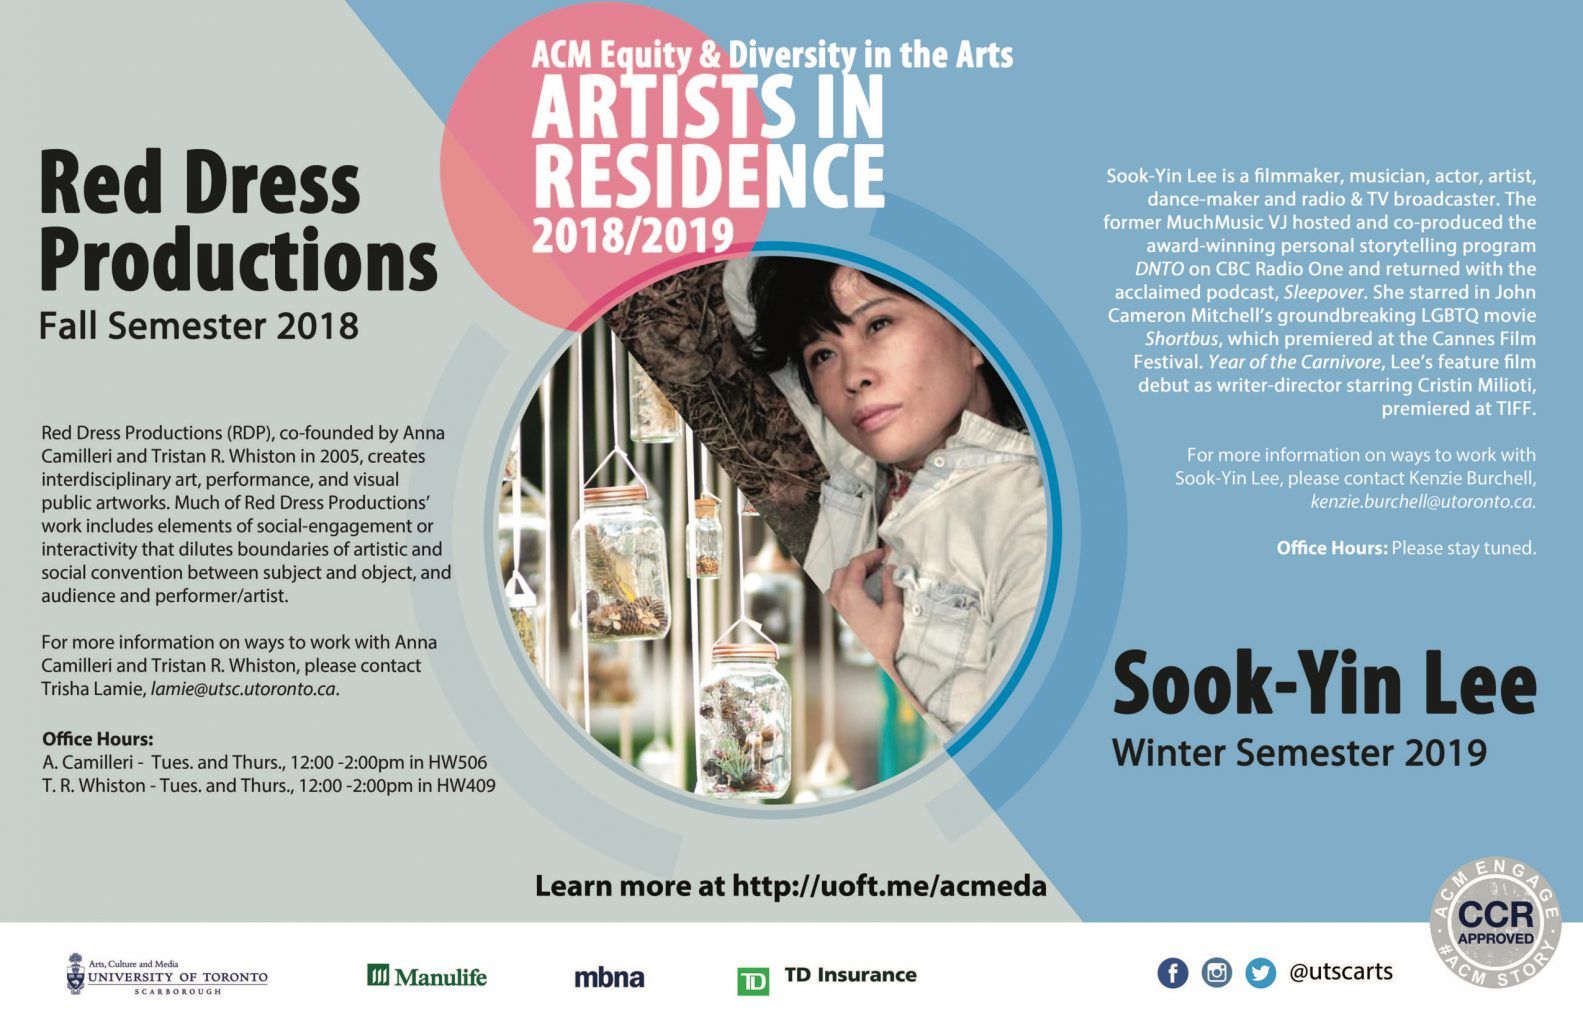 UTSC ACM Equity & Diversity in the Arts Artists in Residence 2018/2019 graphic poster